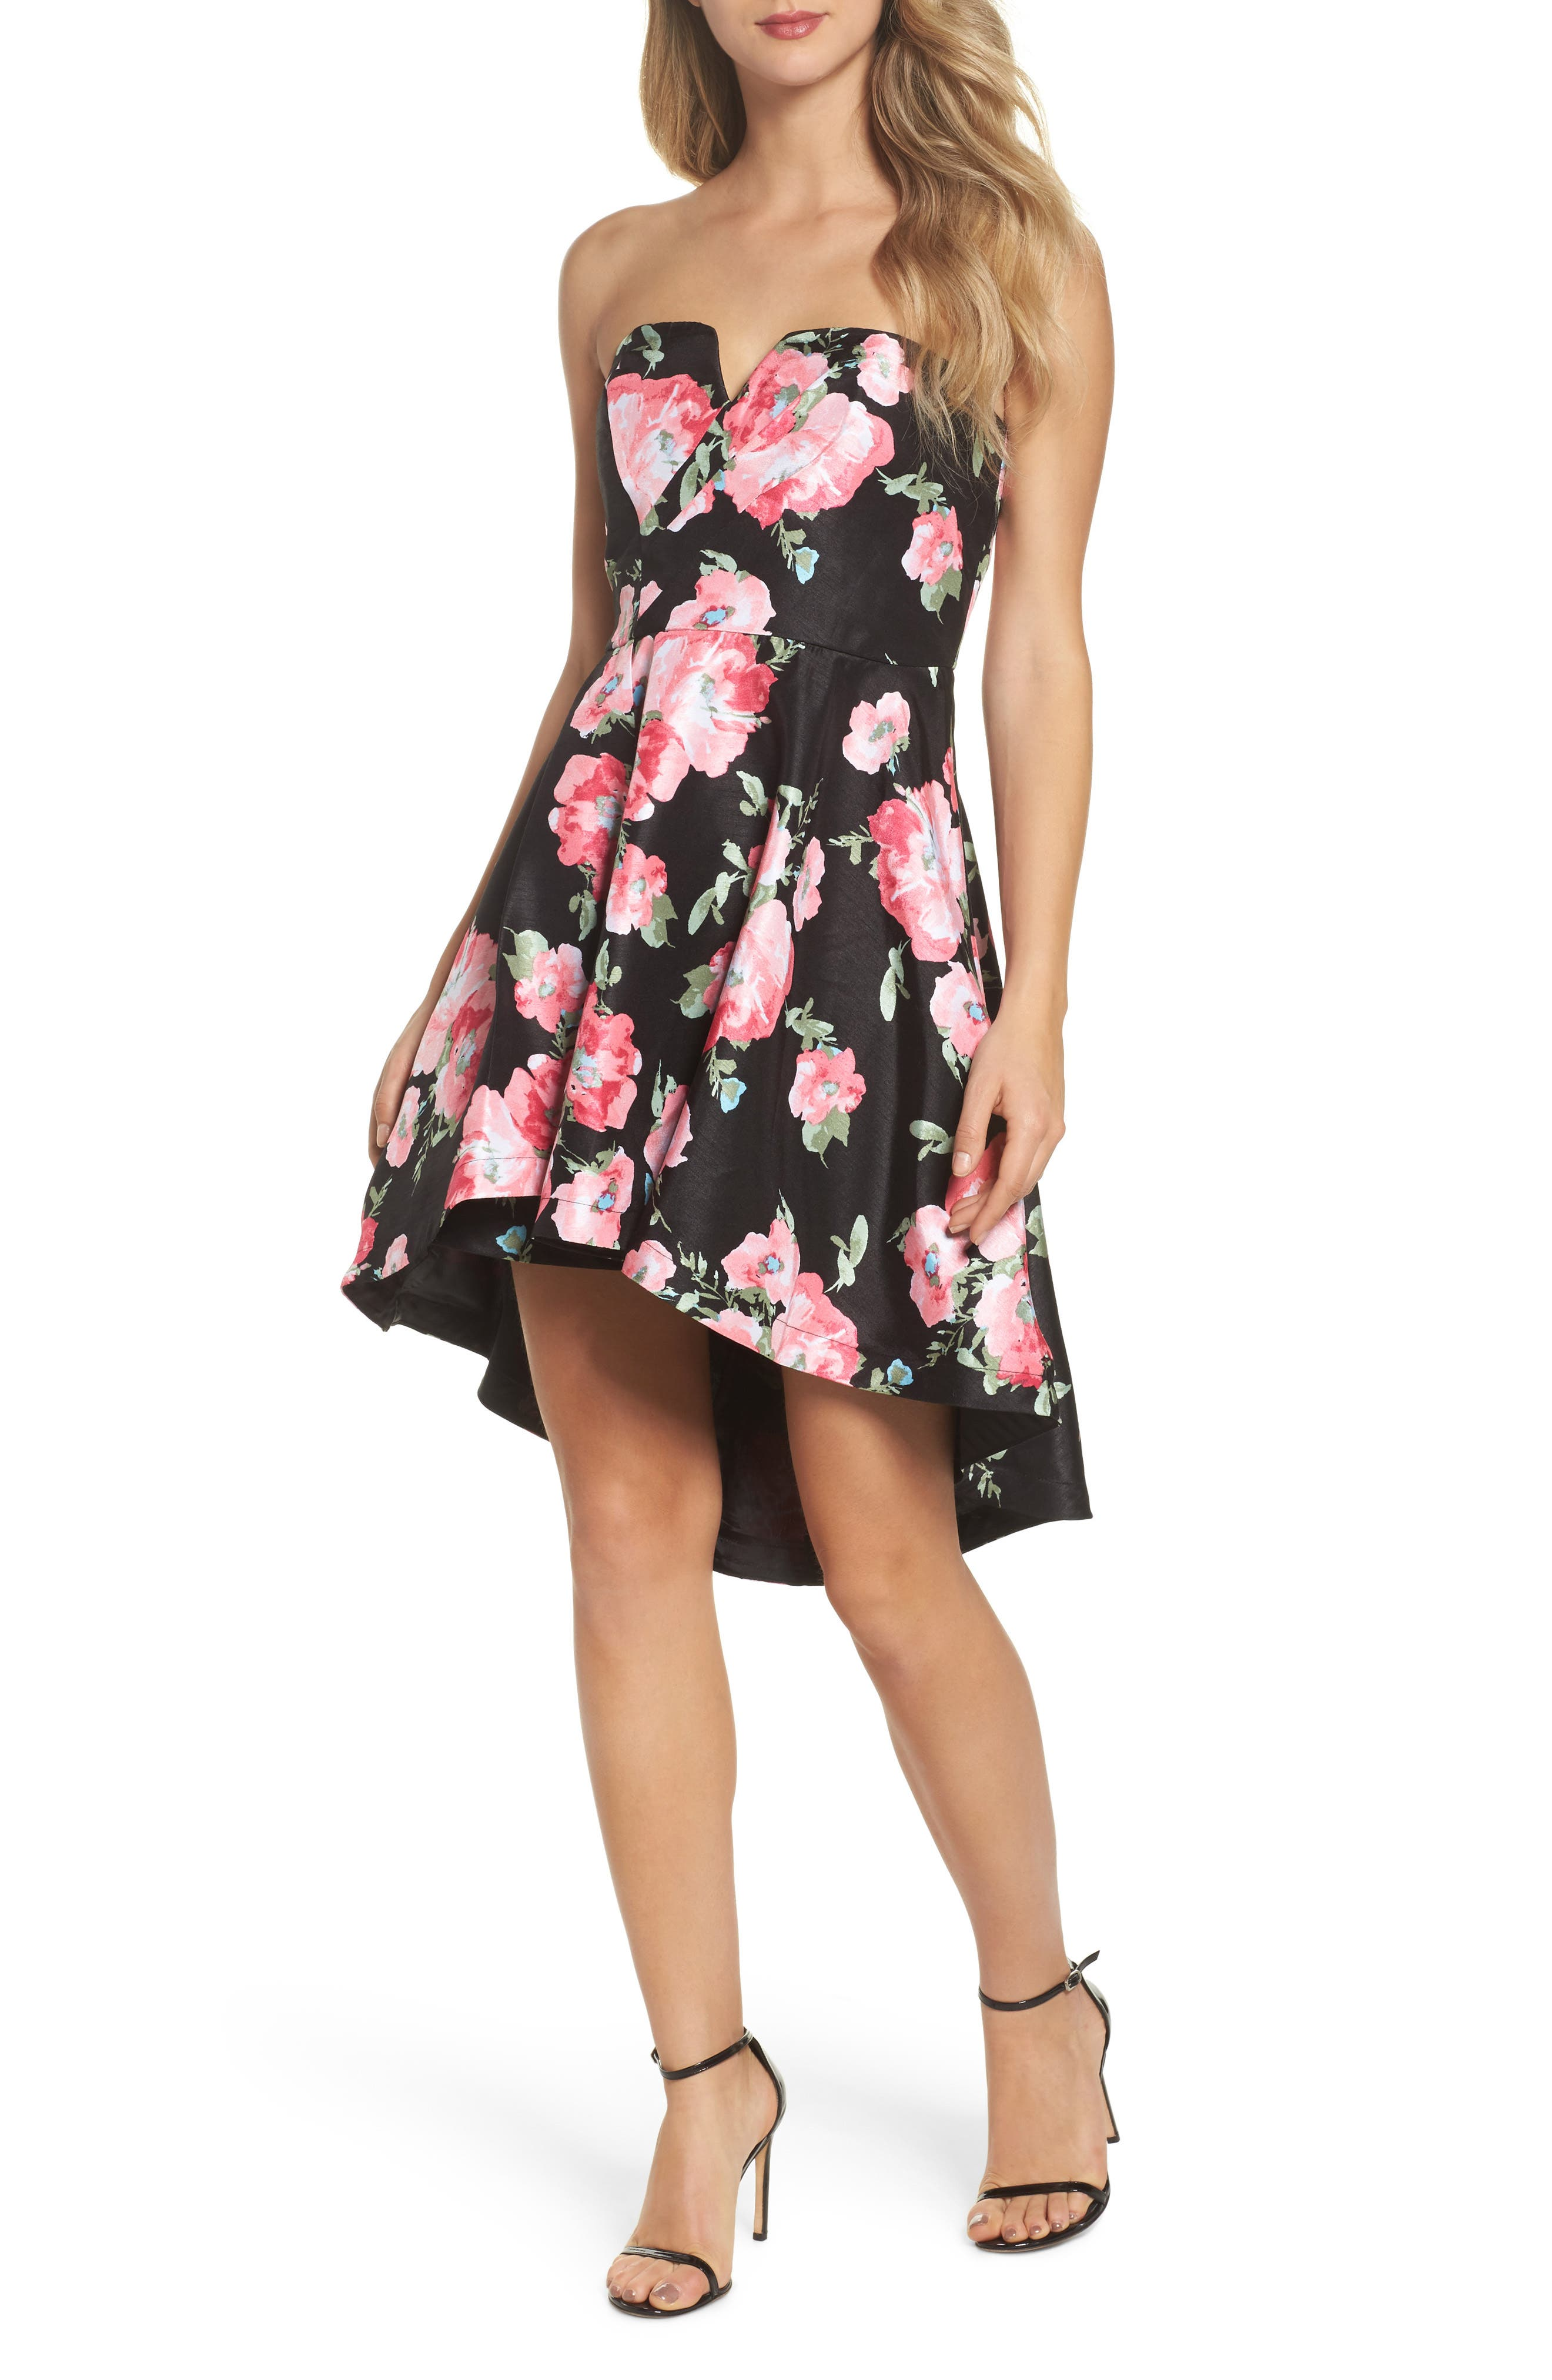 Alternate Image 1 Selected - Sequin Hearts Floral High/Low Strapless Dress